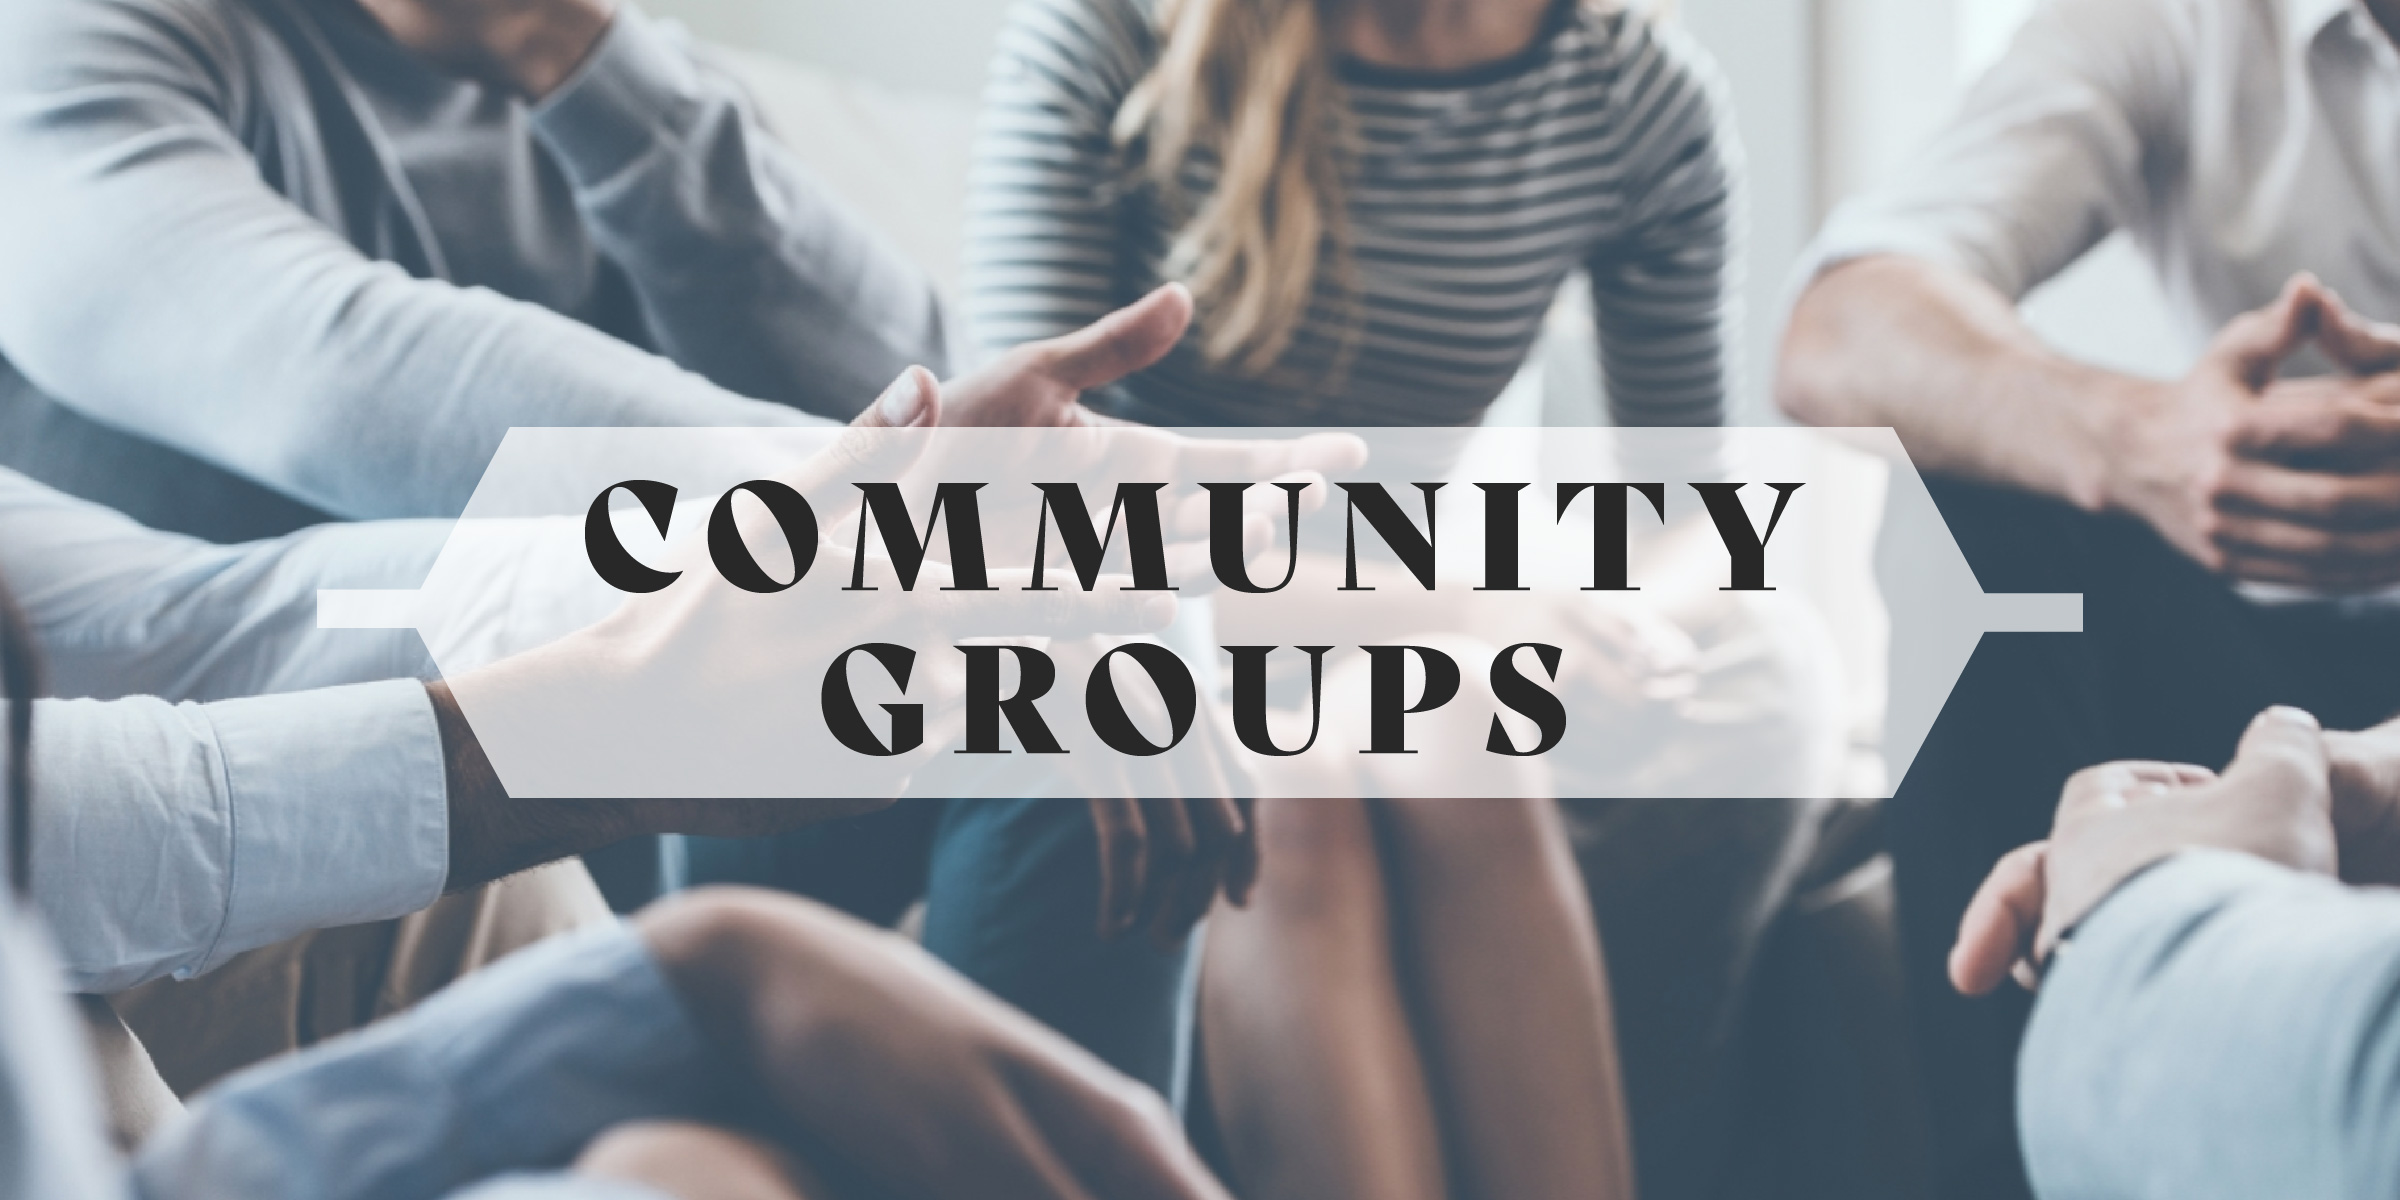 Community Groups (final_2)-01